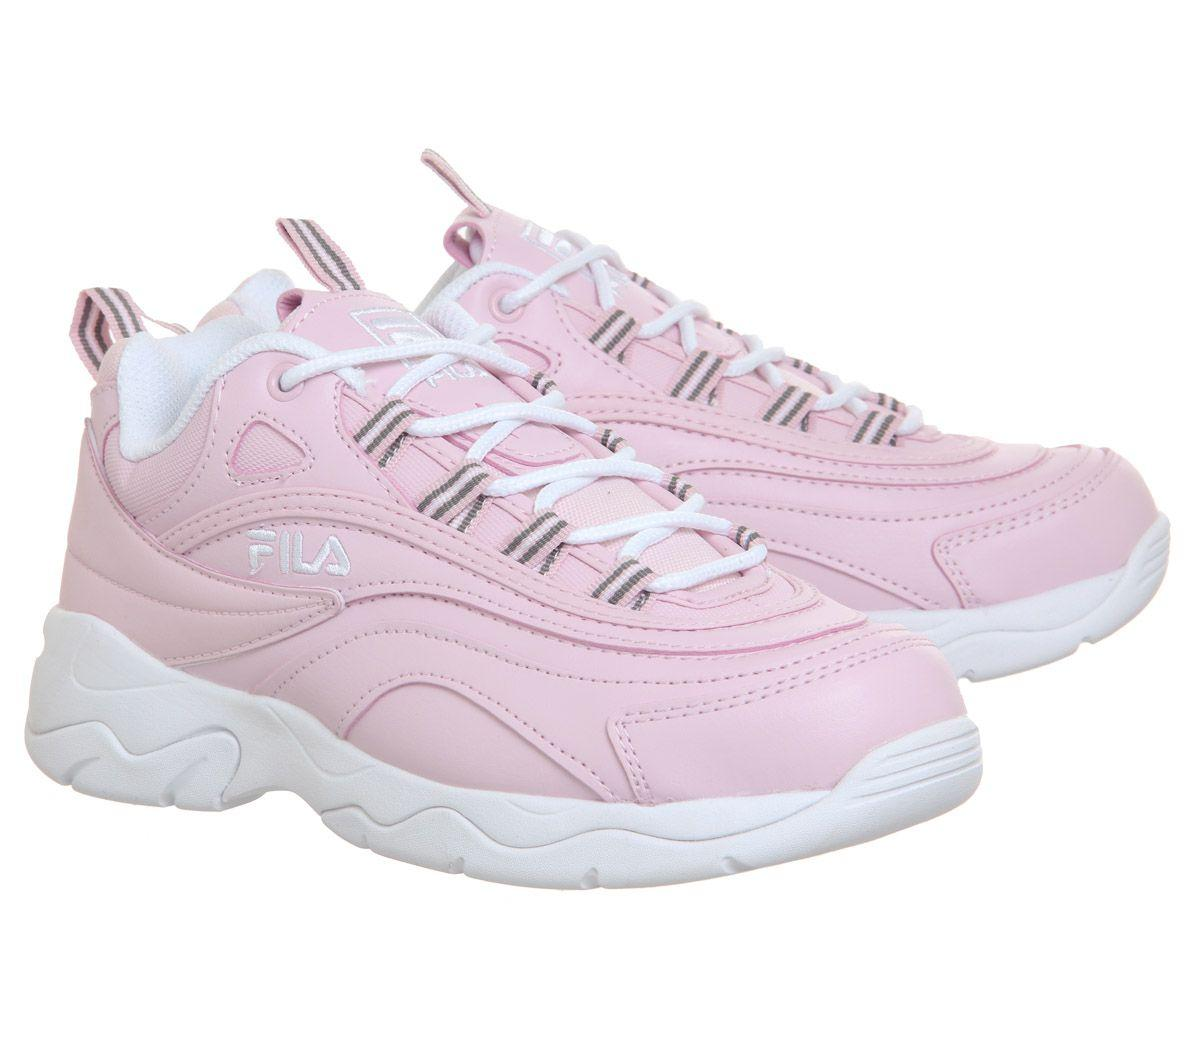 Fila Leather Ray Trainers in Chalk Pink